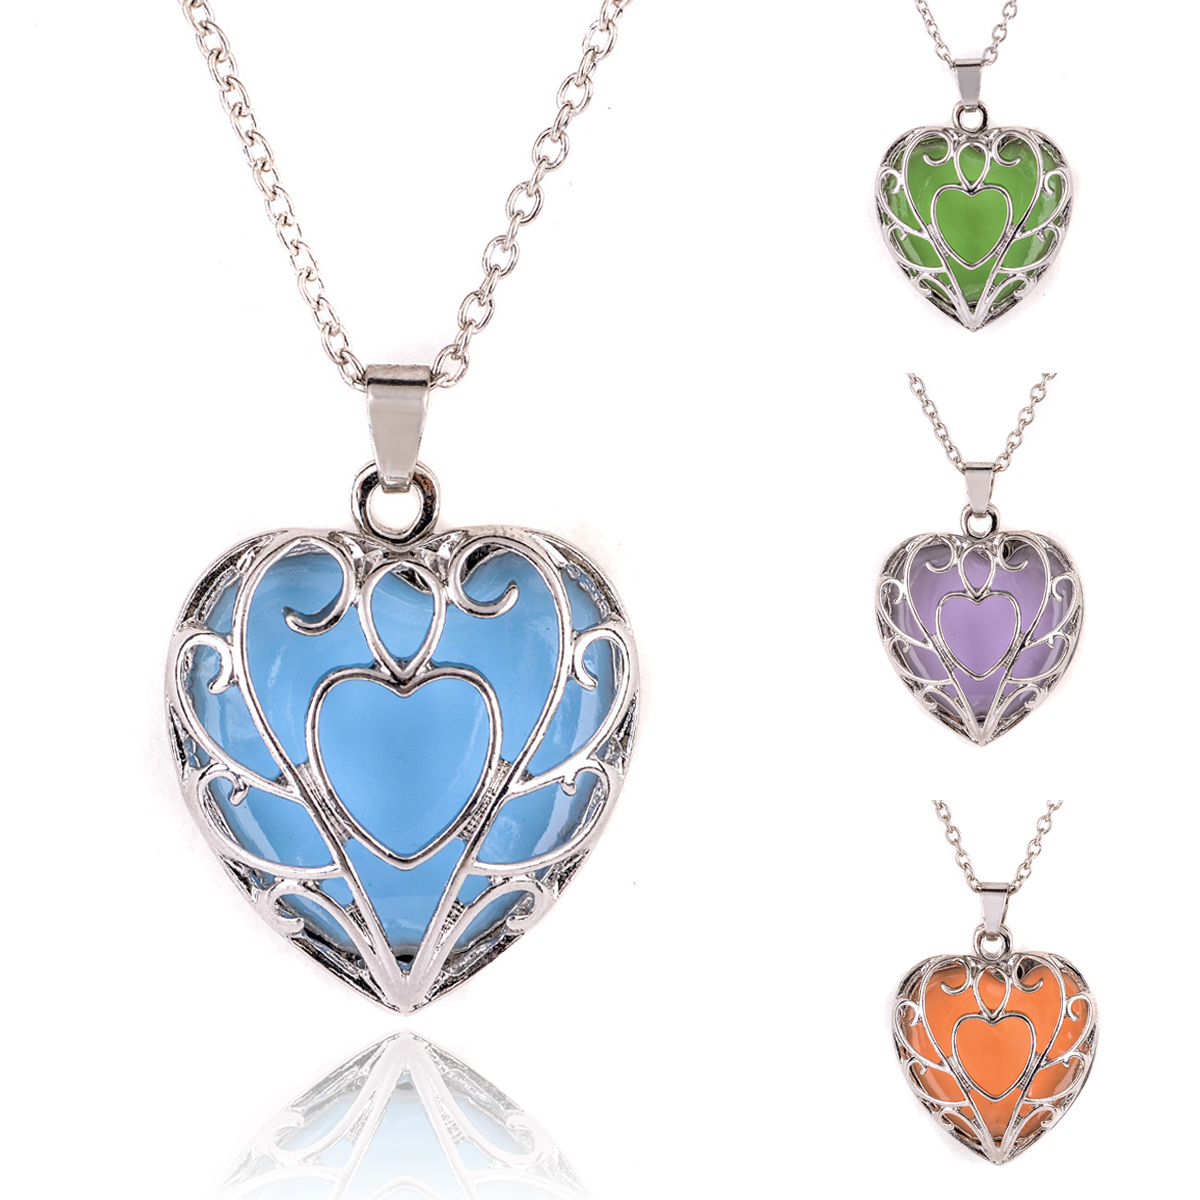 Vintage Luminous Choker Necklaces Shellhard Glow In The Dark Heart Pendant Locket Necklace For Women Fashion